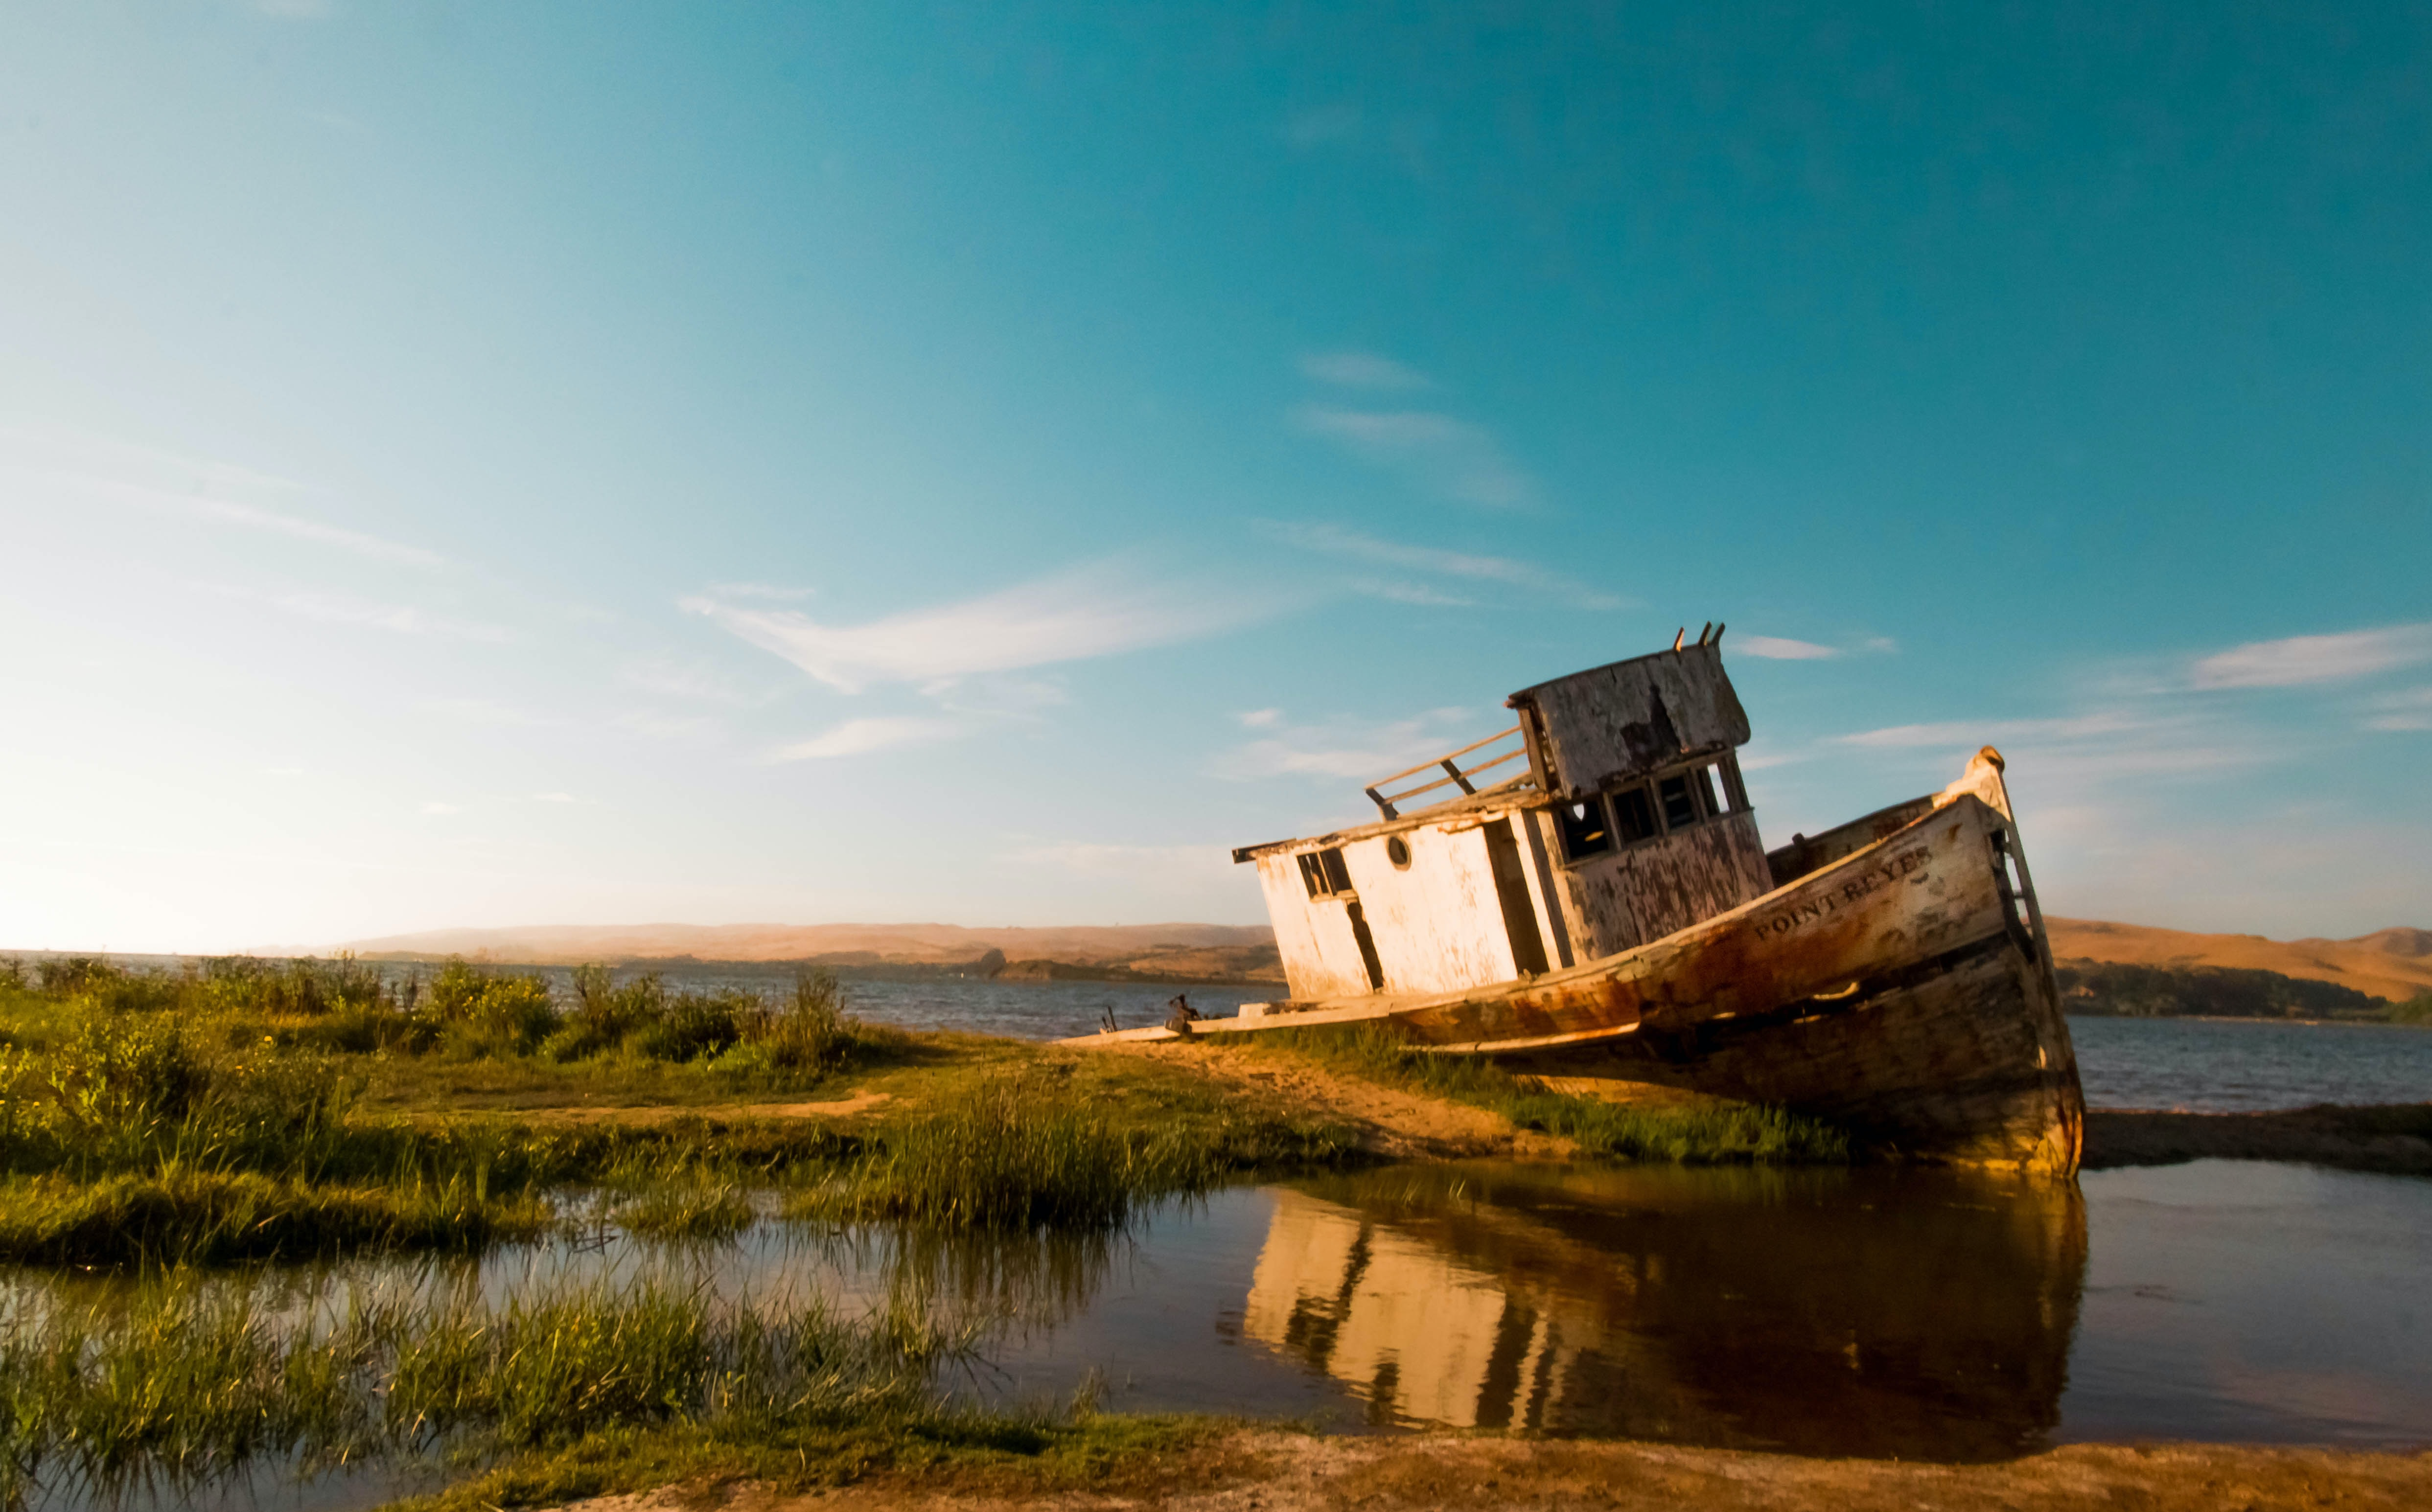 abandoned boat on body of water